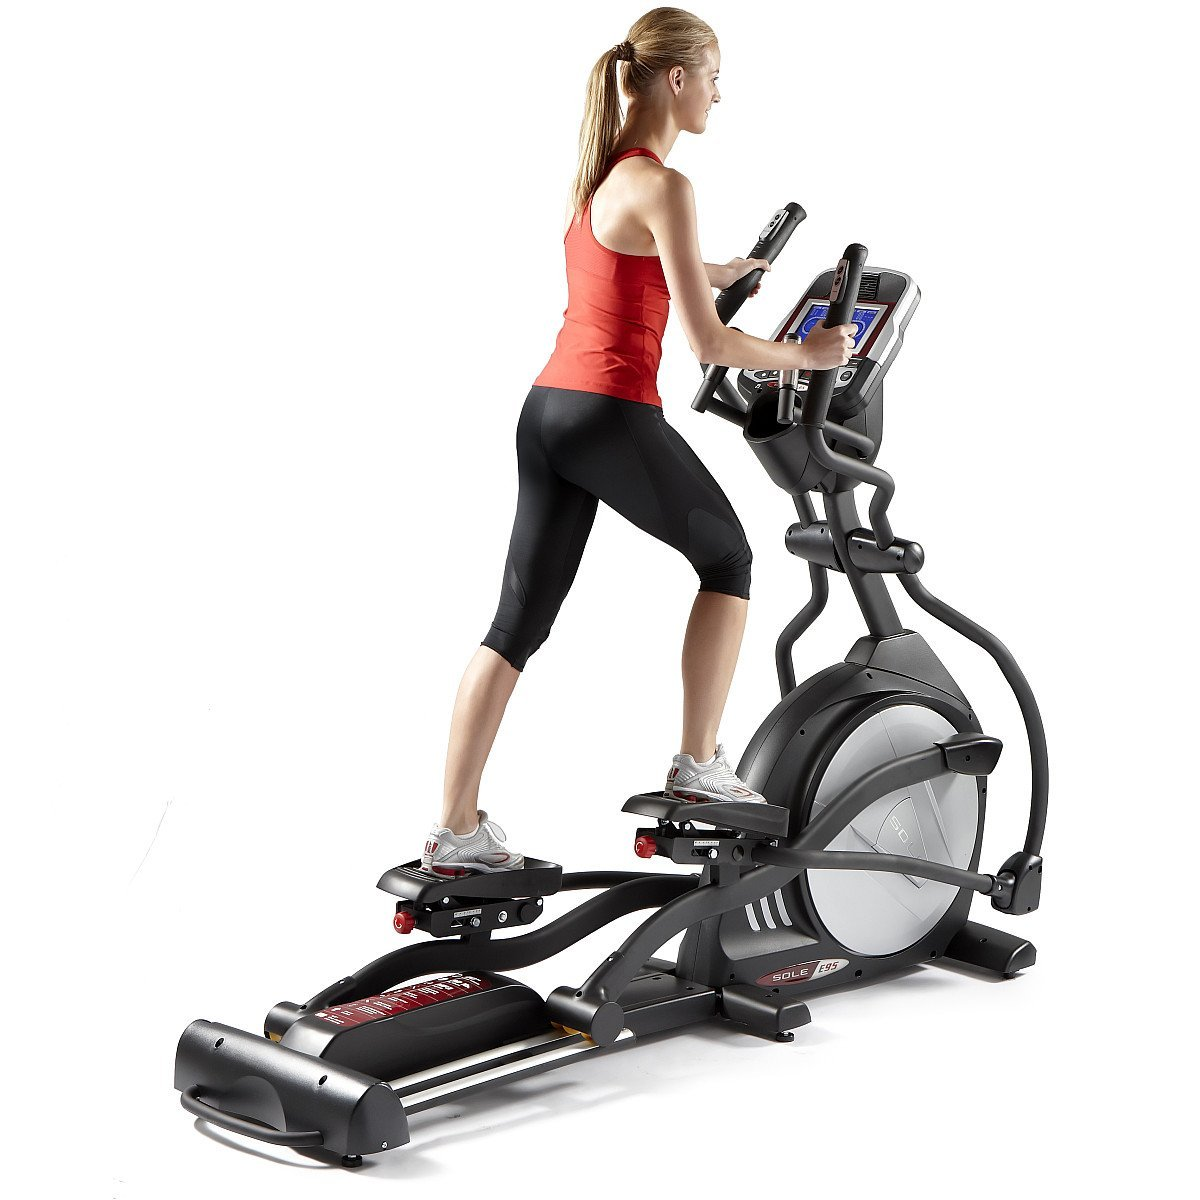 Sole E95 Elliptical Review (REVISED 2020)